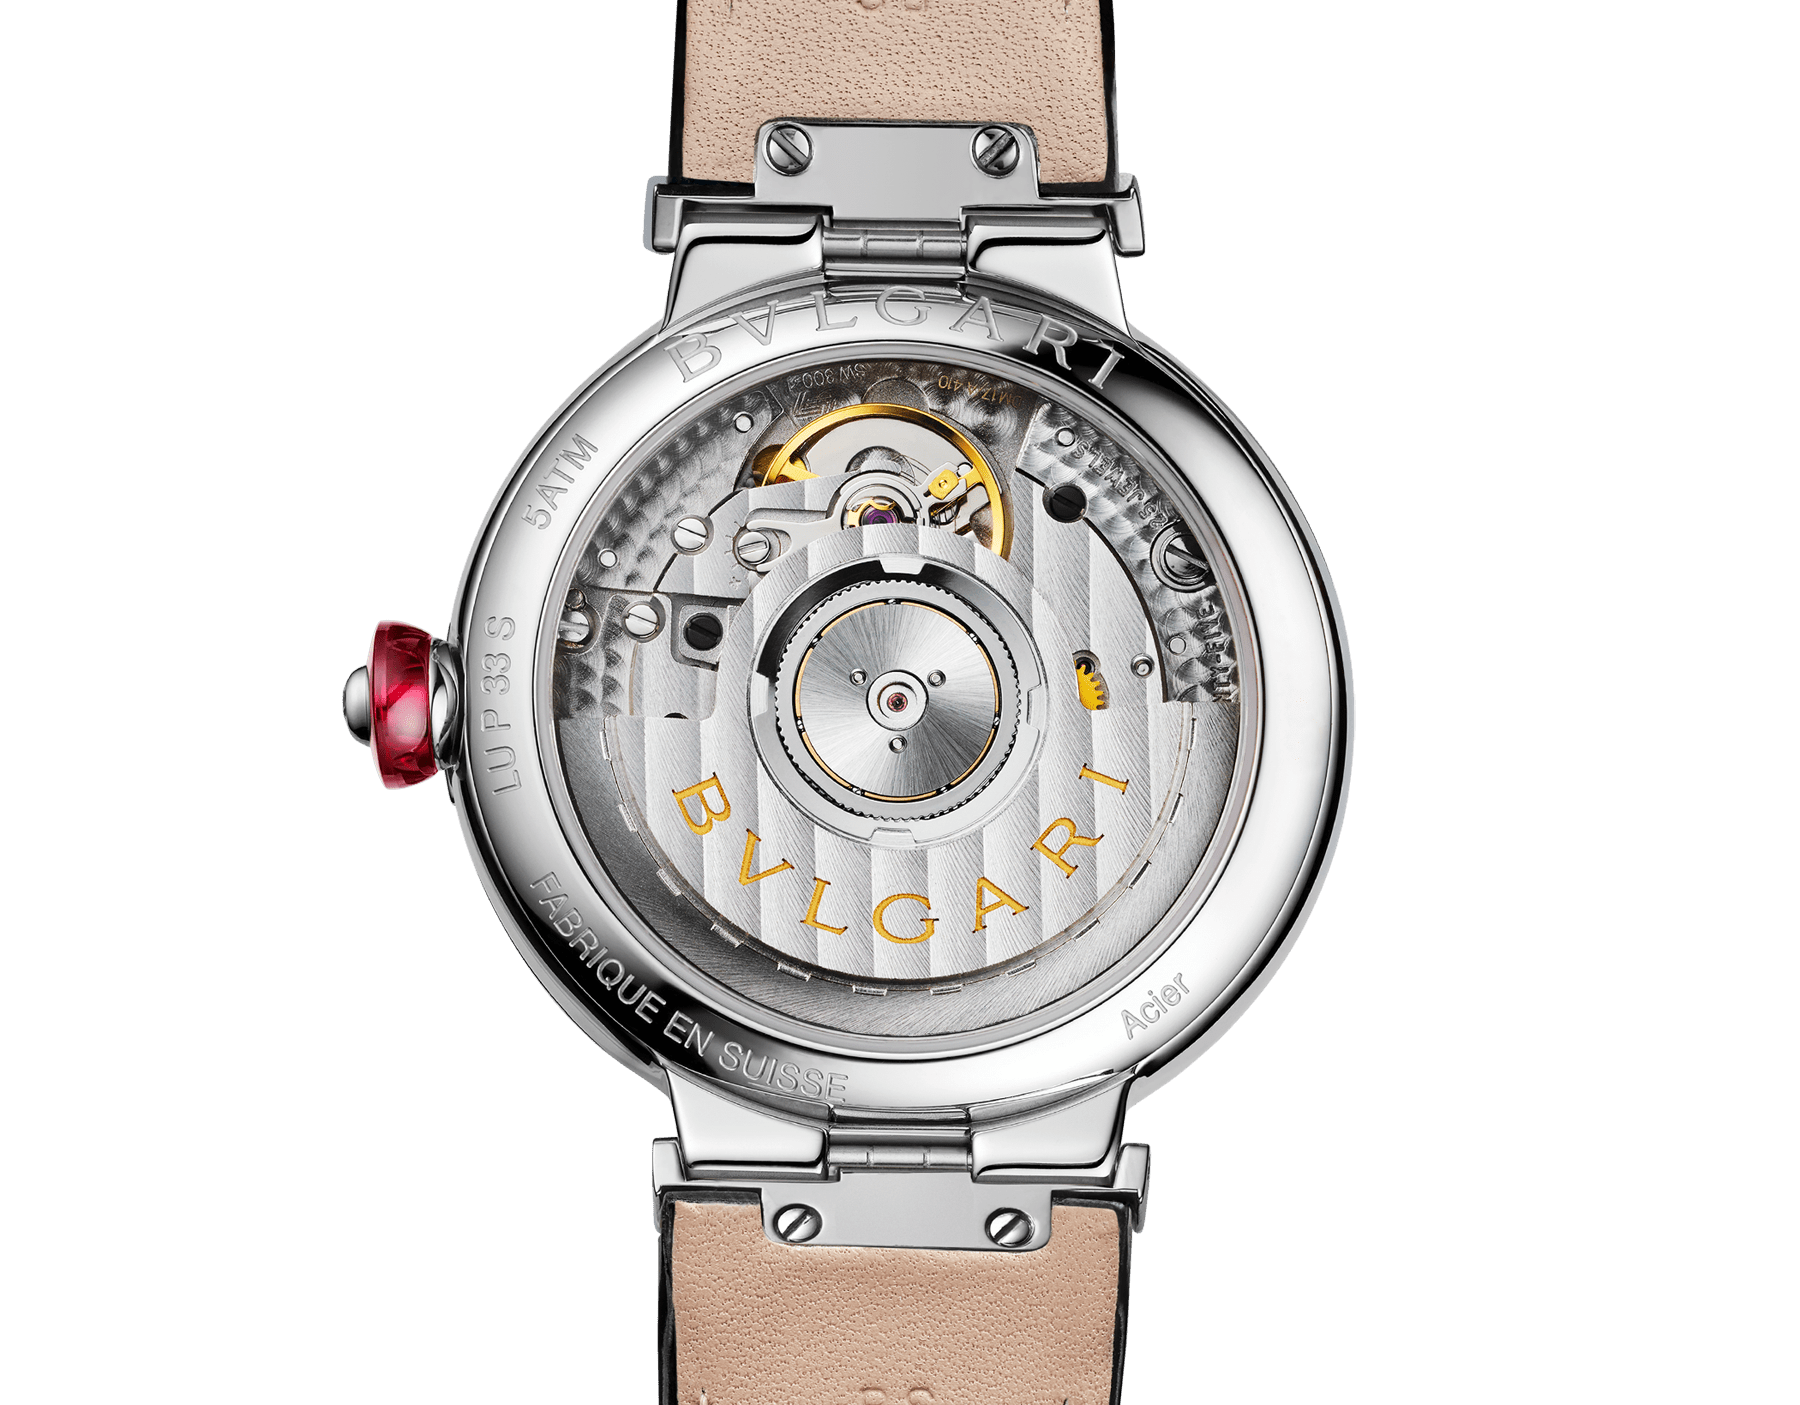 LVCEA watch with stainless steel case, white mother-of-pearl Intarsio marquetry dial, diamond indexes and black alligator bracelet 103478 image 4